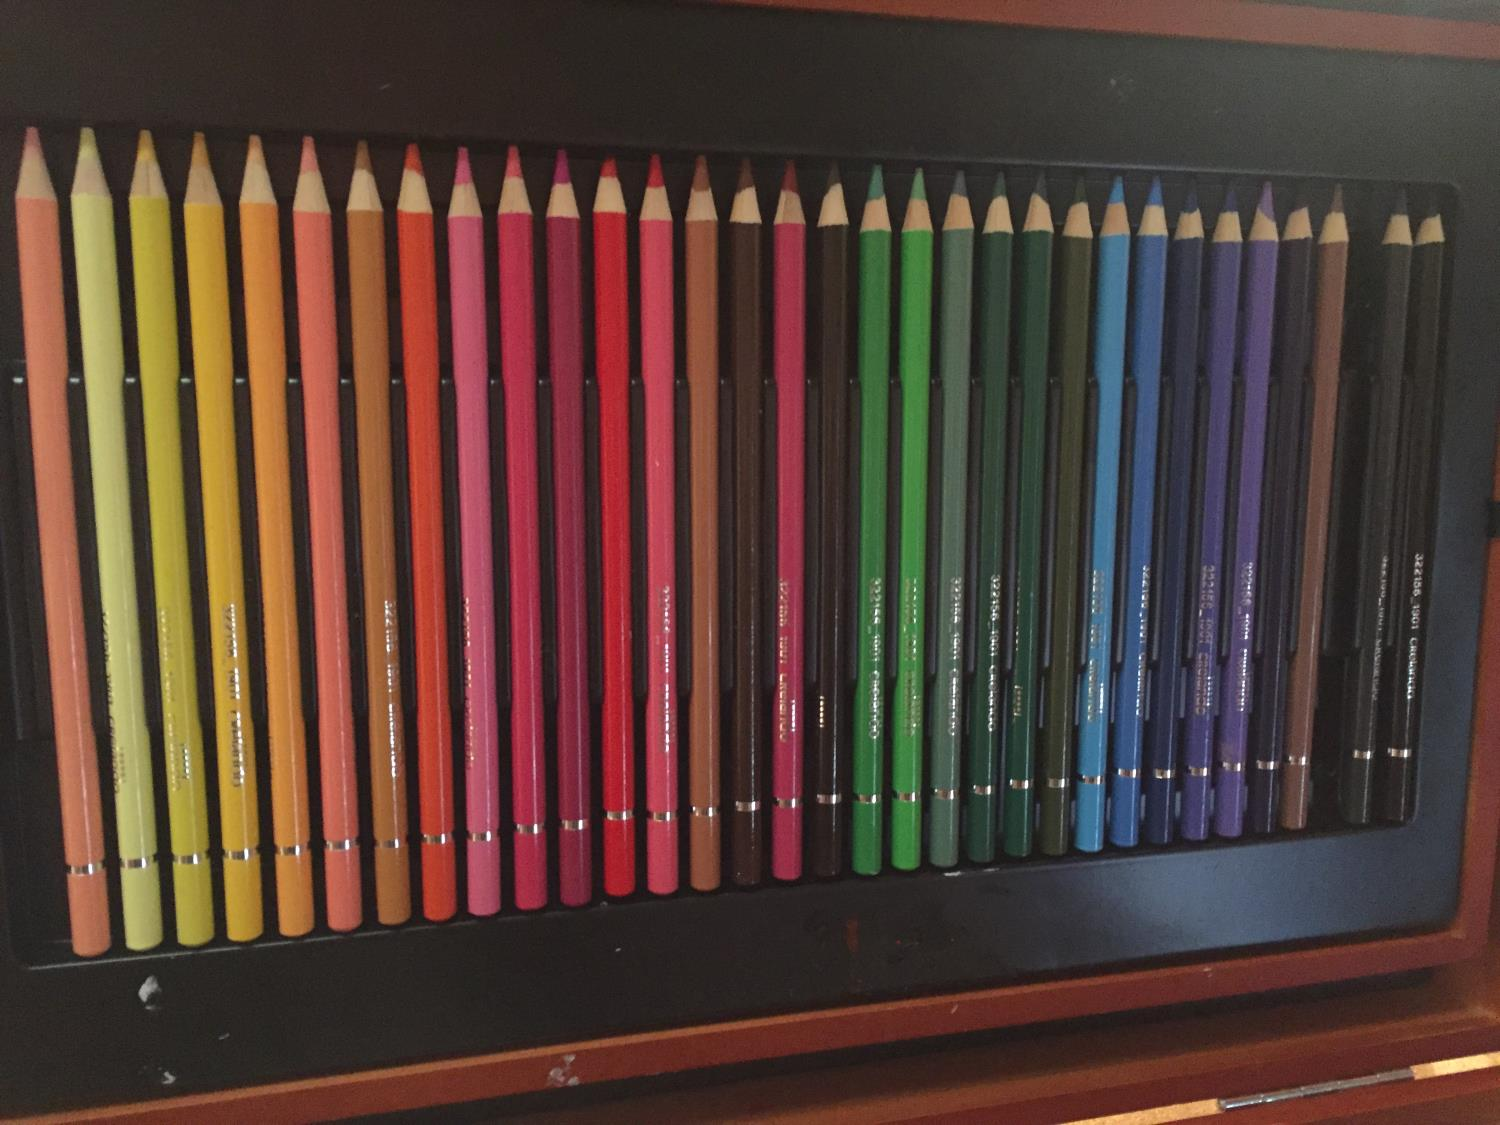 TWO CASES OF ART SUPPLIES TO INCLUDE FELT TIPS, PENCILS, OIL PAINTS ETC - Image 8 of 12